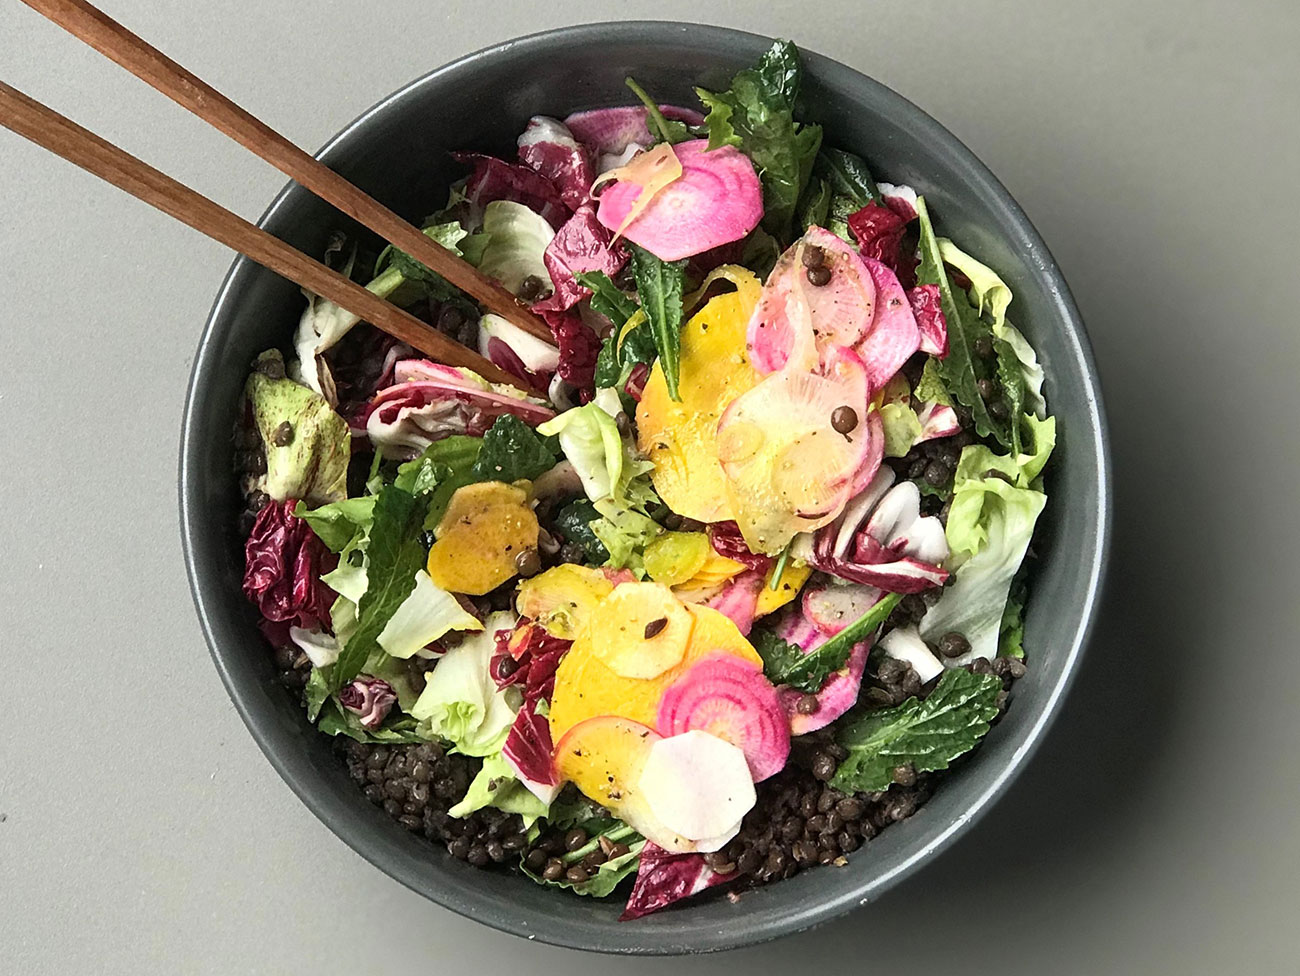 bowl of salad with lettuce, kale, sliced beets, radishes, and lentils